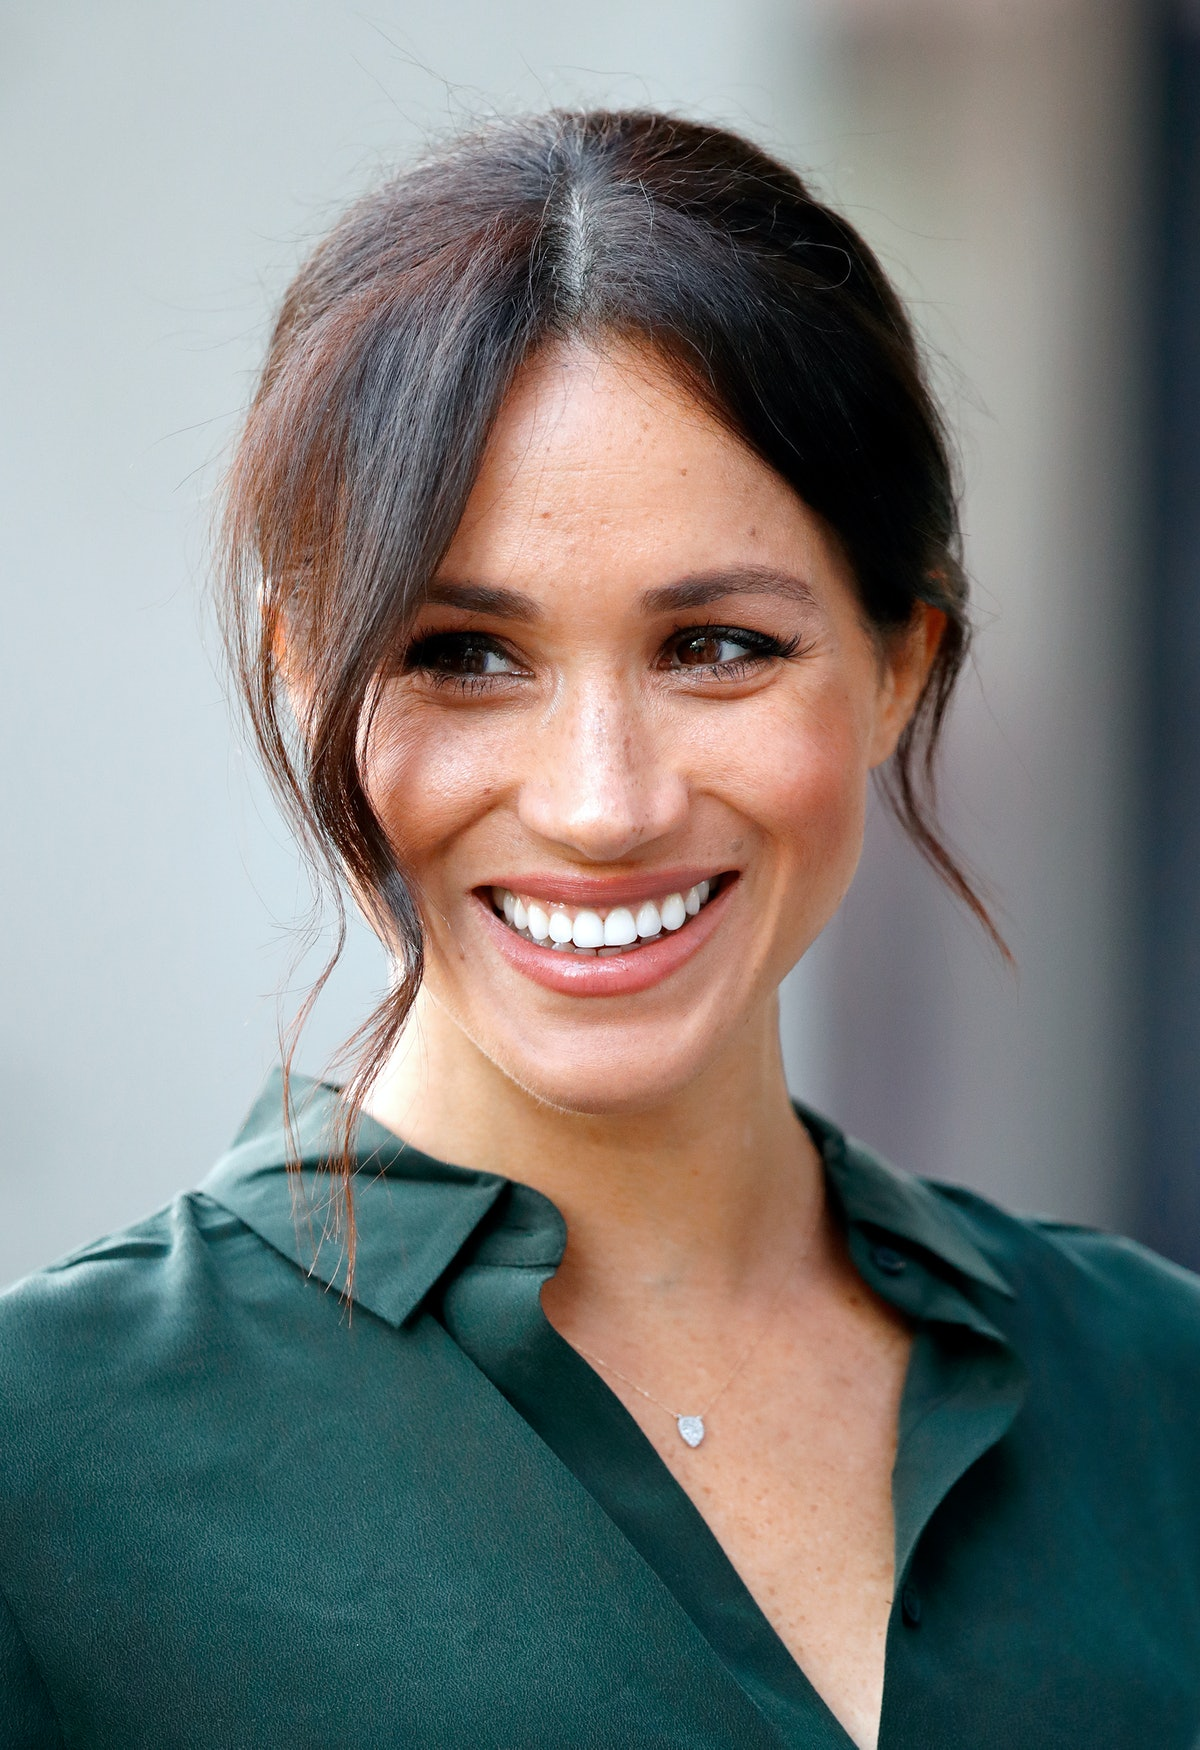 Meghan Markle wears a dainty necklace when visiting the University of Chichester's Engineering and T...